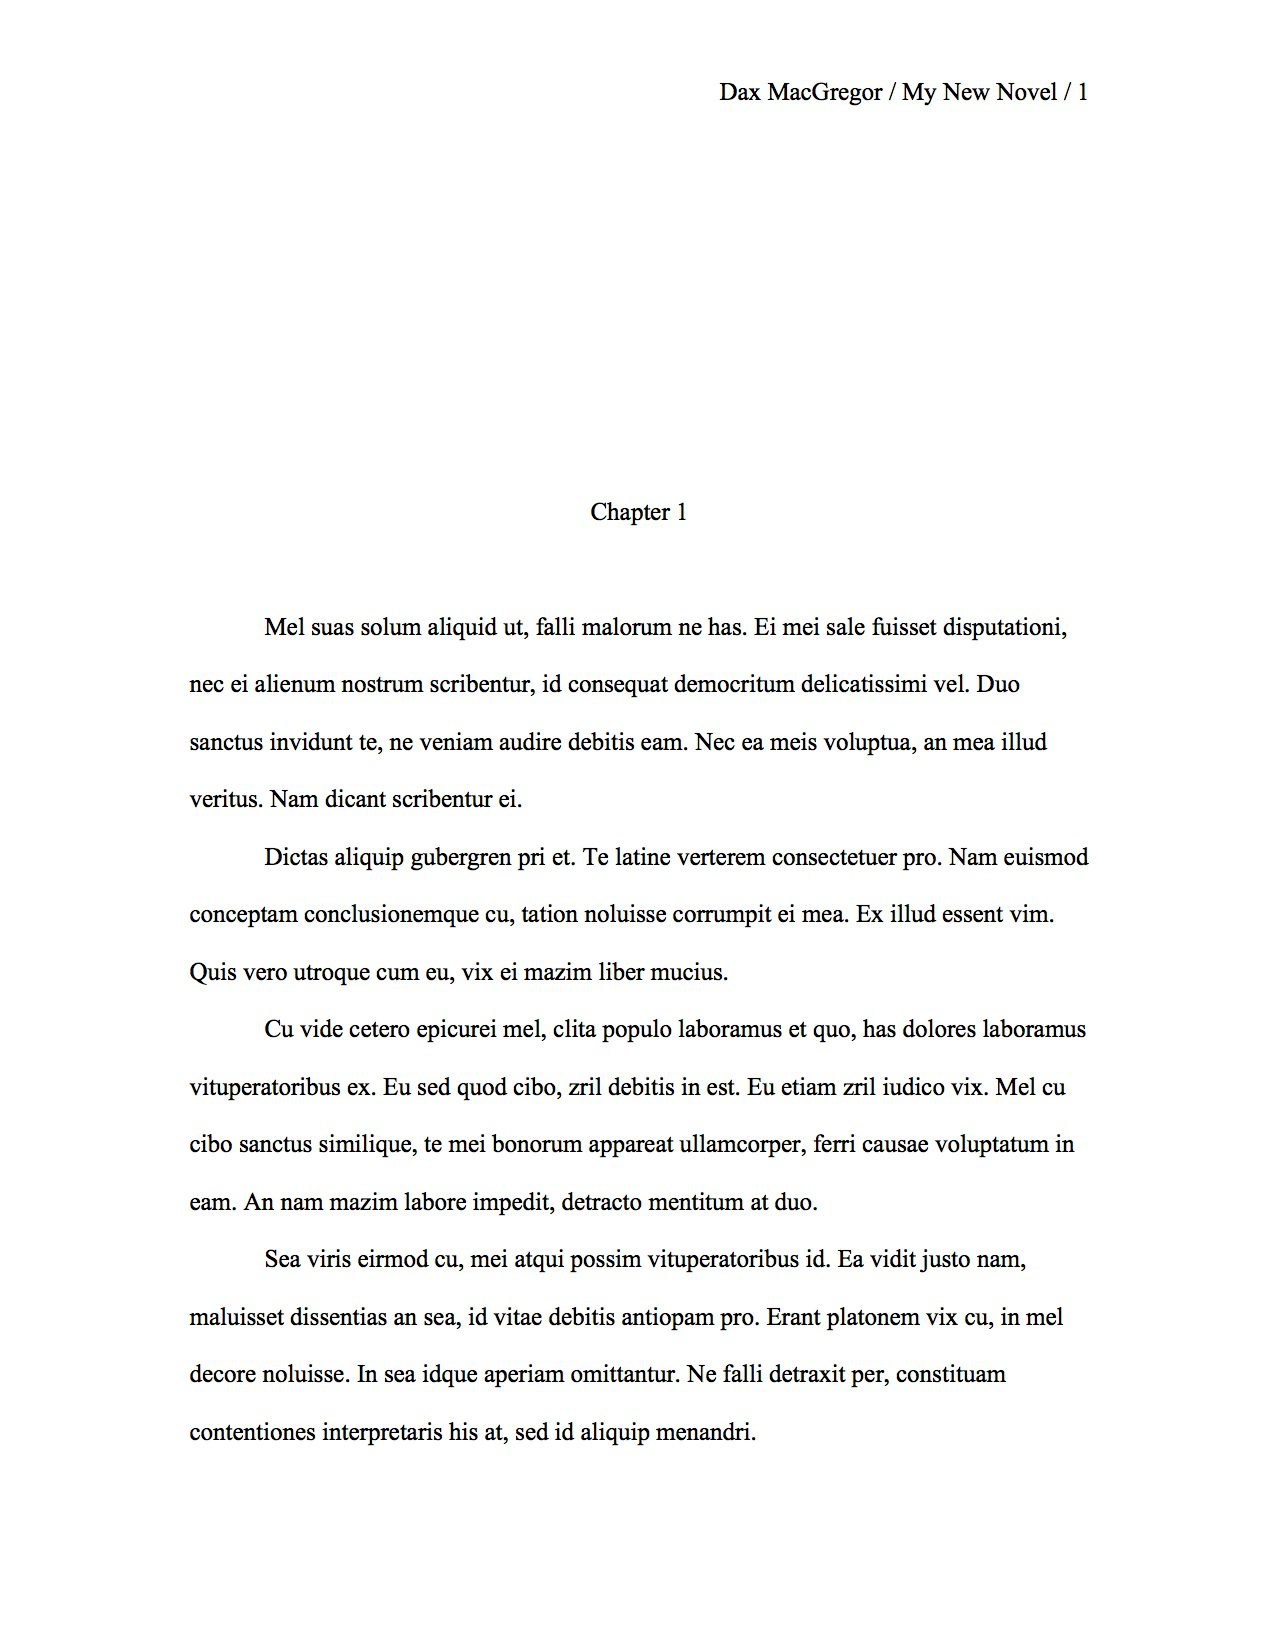 book review sample essay proper manuscript format for a novel first manuscript sample chapter title